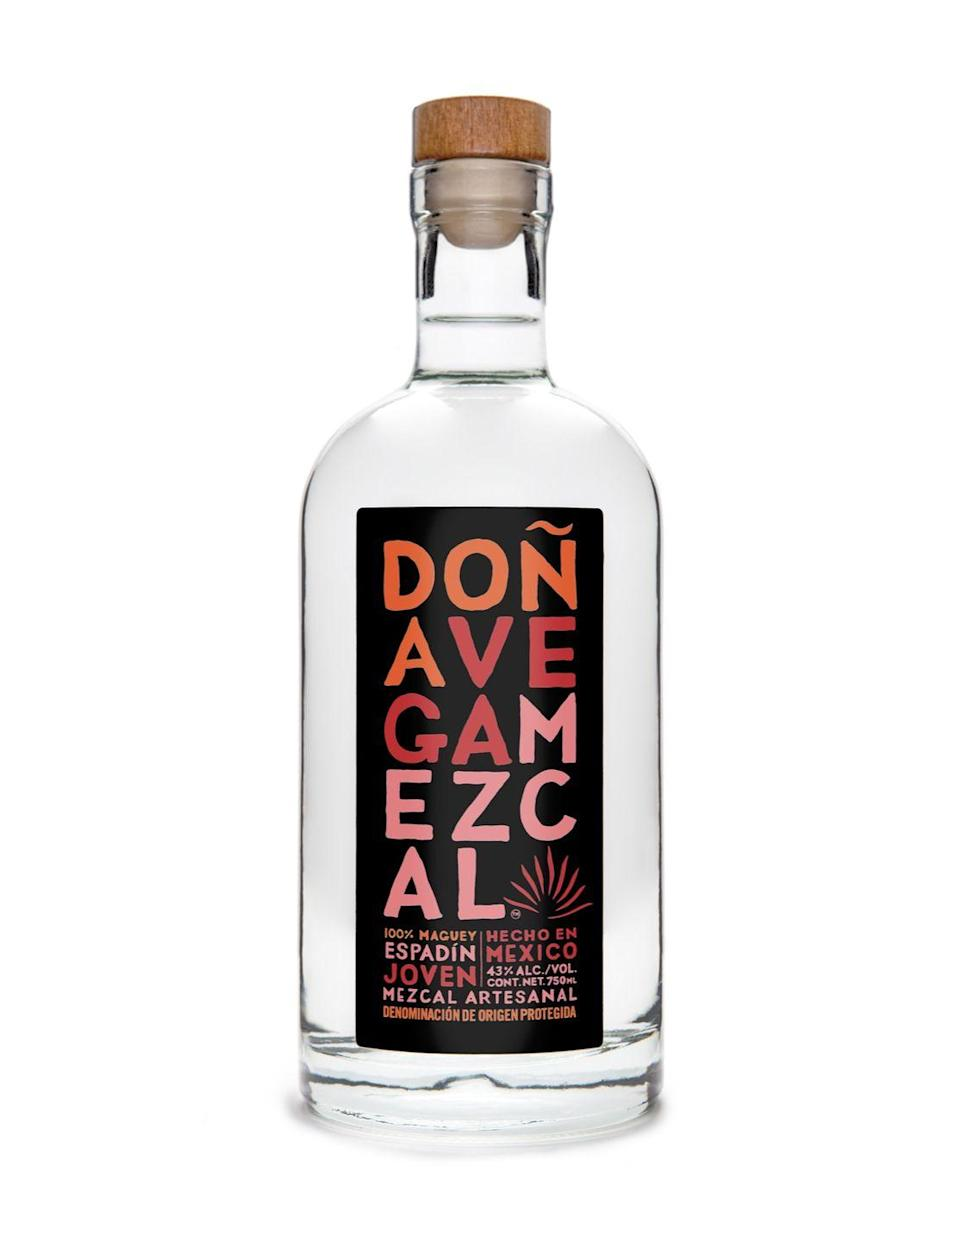 """<p>Founded by Sonya Vega Auvray, this vegan, organic, and a higher grade spirit produced in small-batch quantities reinvents the tradition of mezcal. It's a great gateway to those looking to develop a mezcal palate and the producers are an all-female family that has been farming in Oaxaca, Mexico for five generations.</p><p>Find out what retailers near you sell Doña Vega <a href=""""https://mezcaldonavega.com/found-here/"""" rel=""""nofollow noopener"""" target=""""_blank"""" data-ylk=""""slk:here"""" class=""""link rapid-noclick-resp"""">here</a>.</p><p><a class=""""link rapid-noclick-resp"""" href=""""https://www.bottlerocket.com/Dona-Vega-Mezcal-Espadin-750ml.html"""" rel=""""nofollow noopener"""" target=""""_blank"""" data-ylk=""""slk:BUY NOW"""">BUY NOW</a> <em><strong>Doña Vega Mezcal, $45, bottlerocket.com</strong></em></p>"""